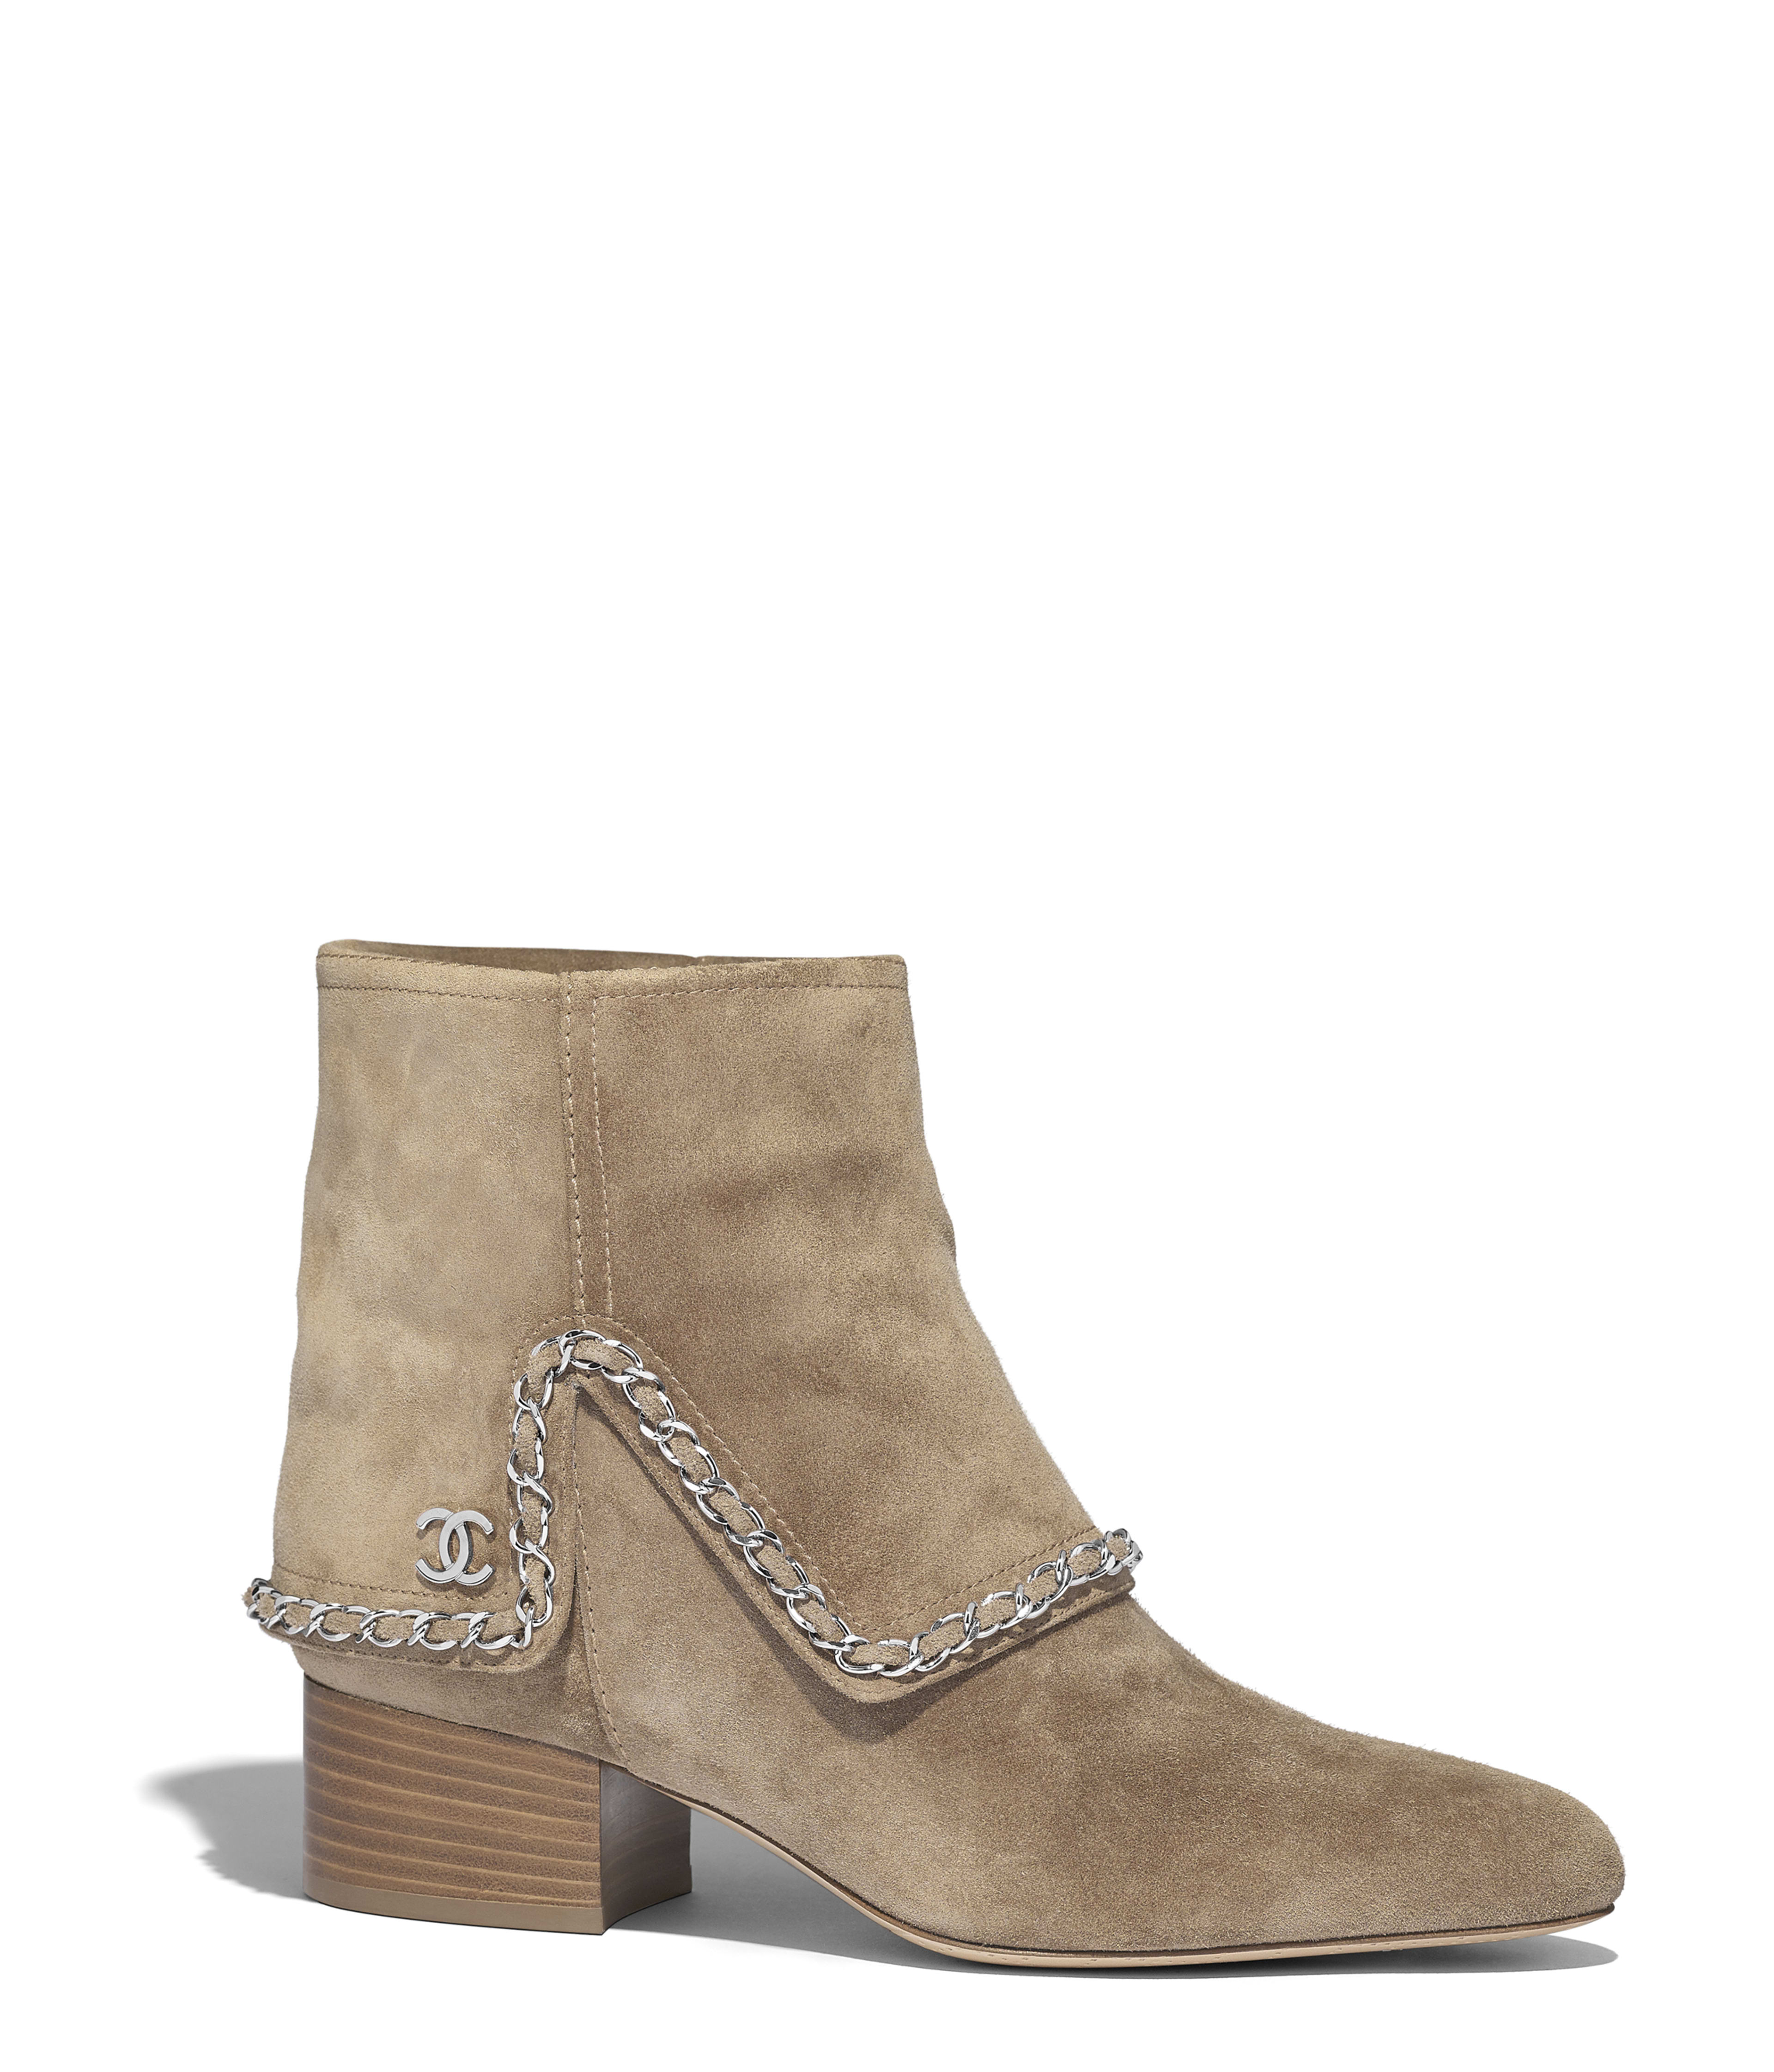 55a1037c3fcc Ankle Boots Suede Calfskin, Beige Ref. G34929X510300H886